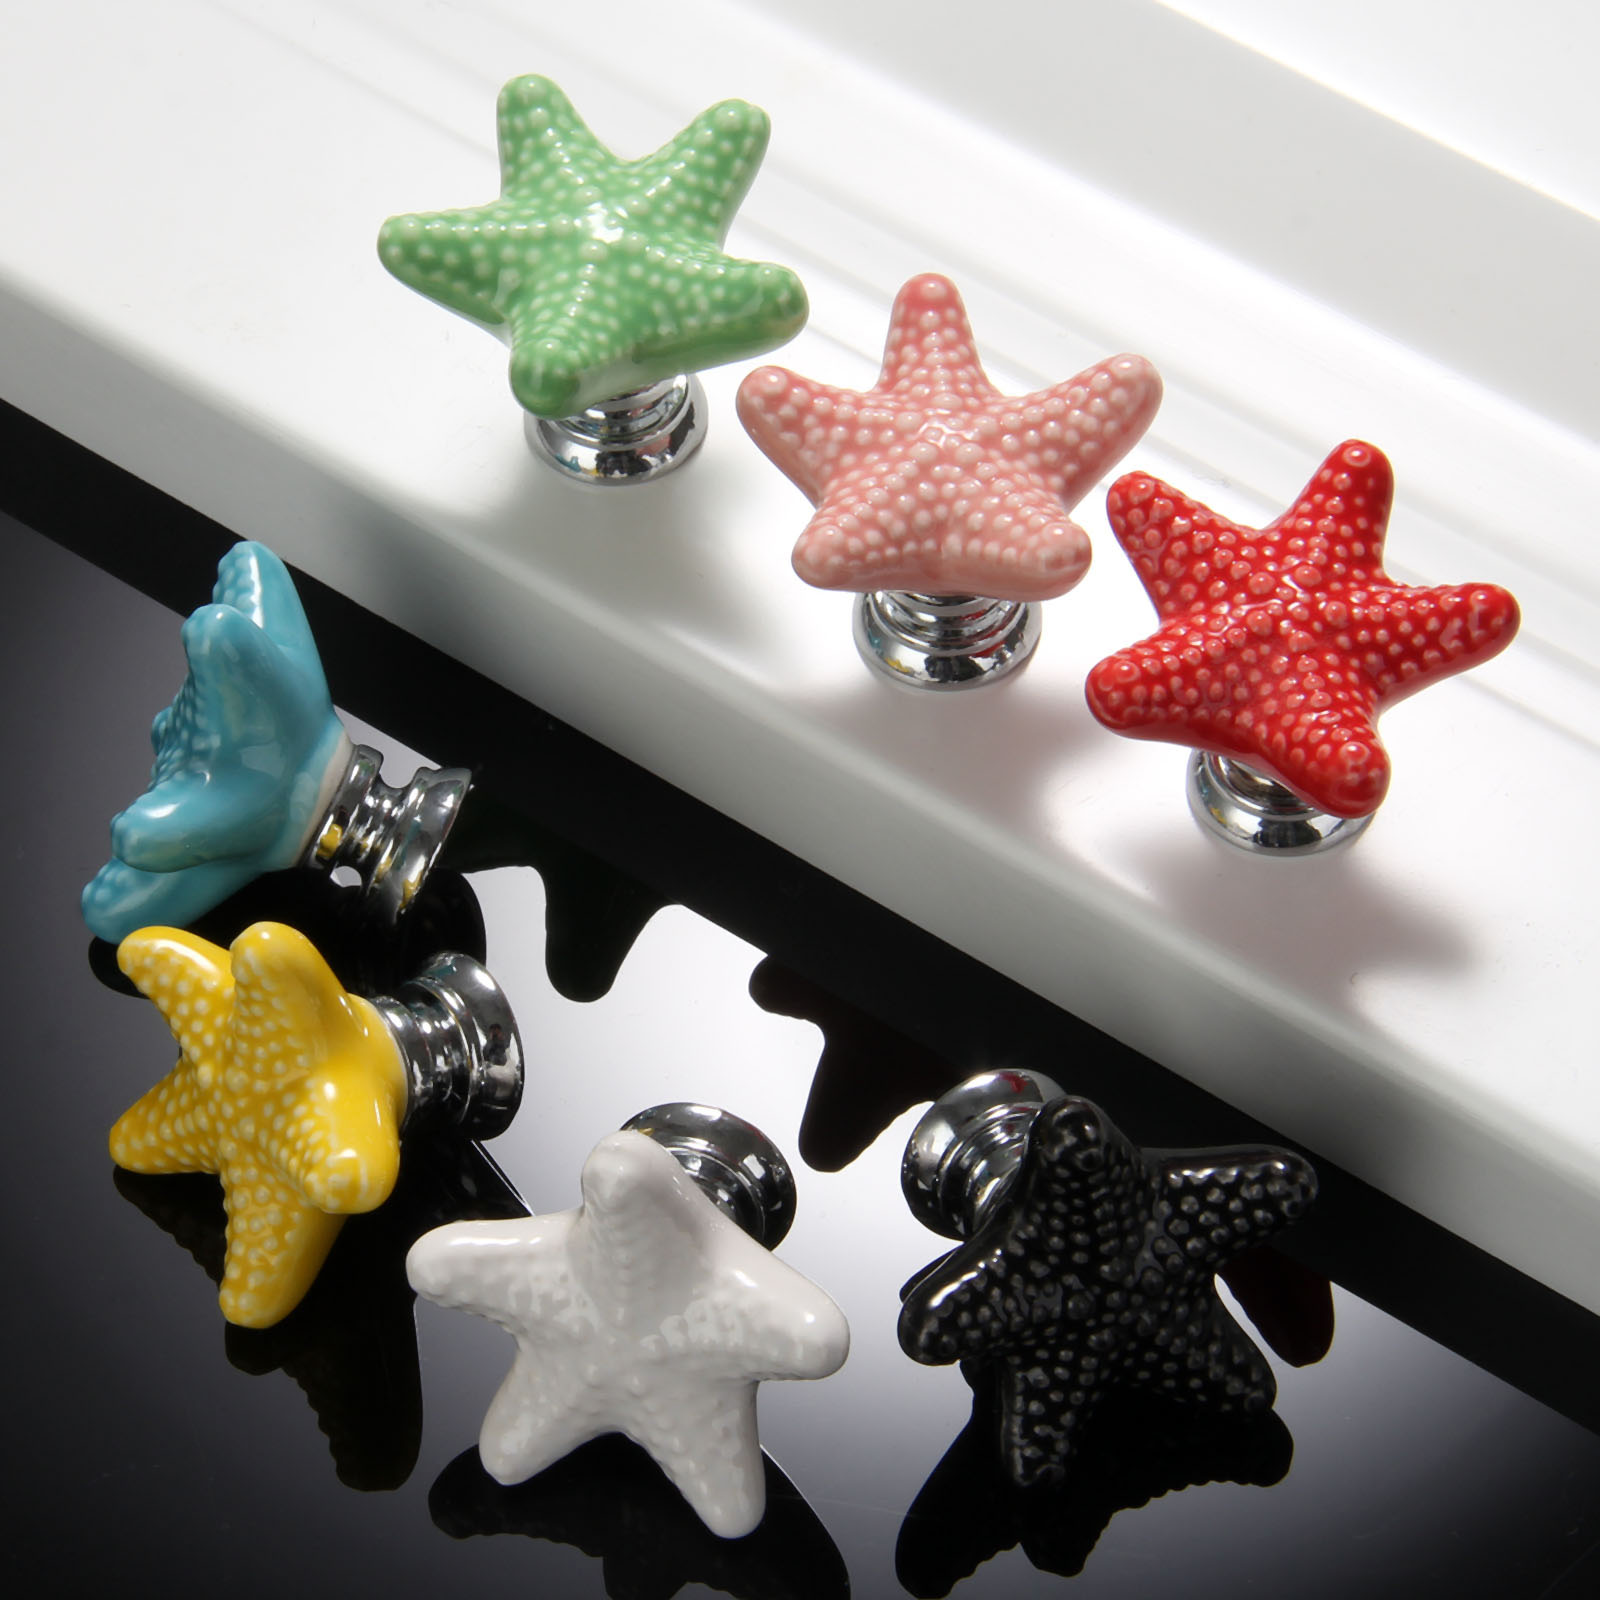 7Pcs/lot Starfish Cabinet Knobs and Handles Furniture Handles Ceramic Door Knob Cupboard Drawer Kitchen Pull Handle Home Decor 1pc furniture handles wardrobe door pull drawer handle kitchen cupboard handle cabinet knobs and handles decorative dolphin knob